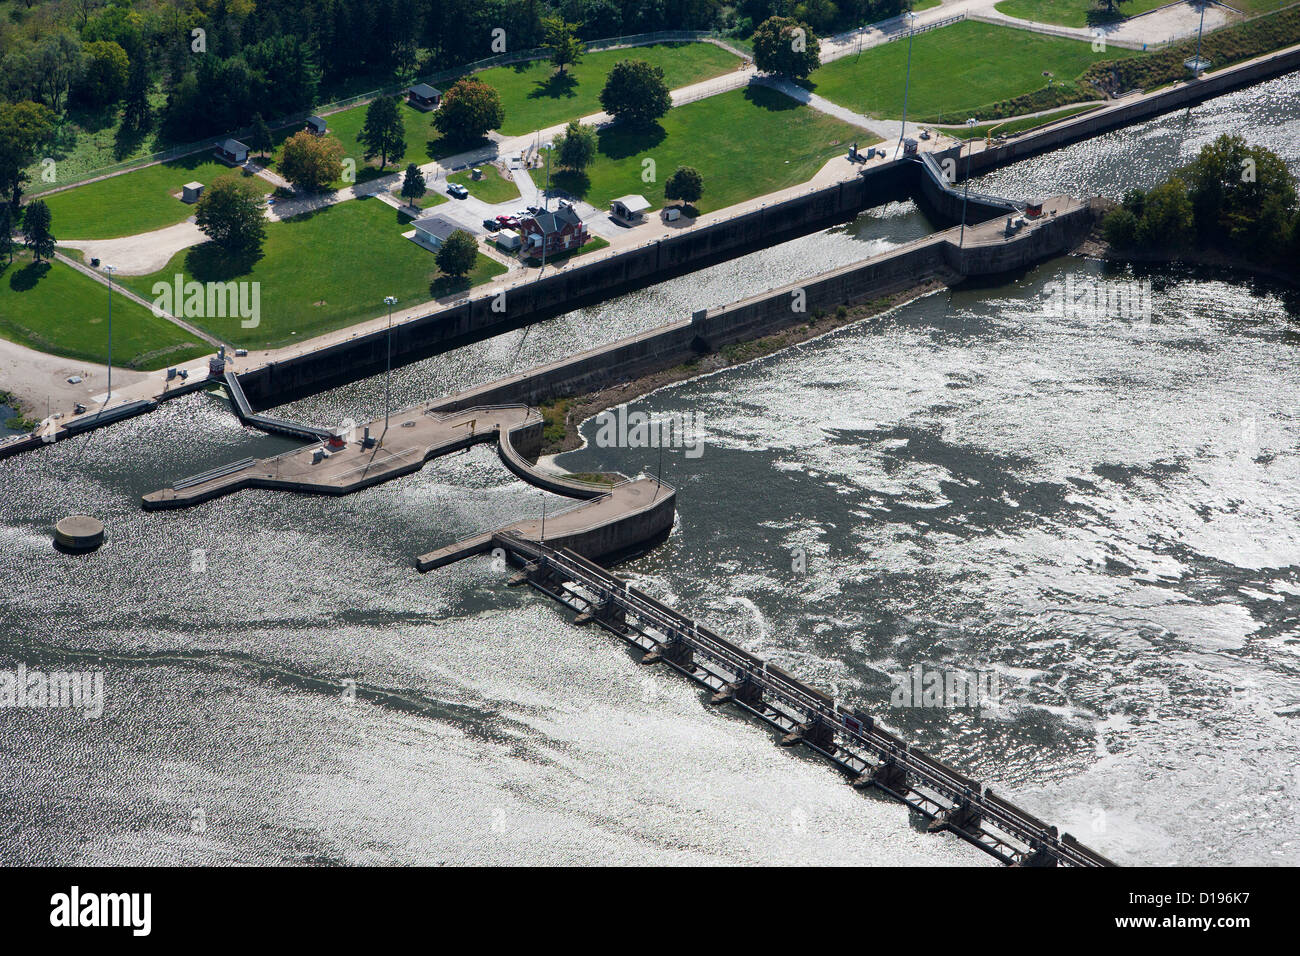 aerial photograph Starved Rock Lock and Dam, Illinois River - Stock Image